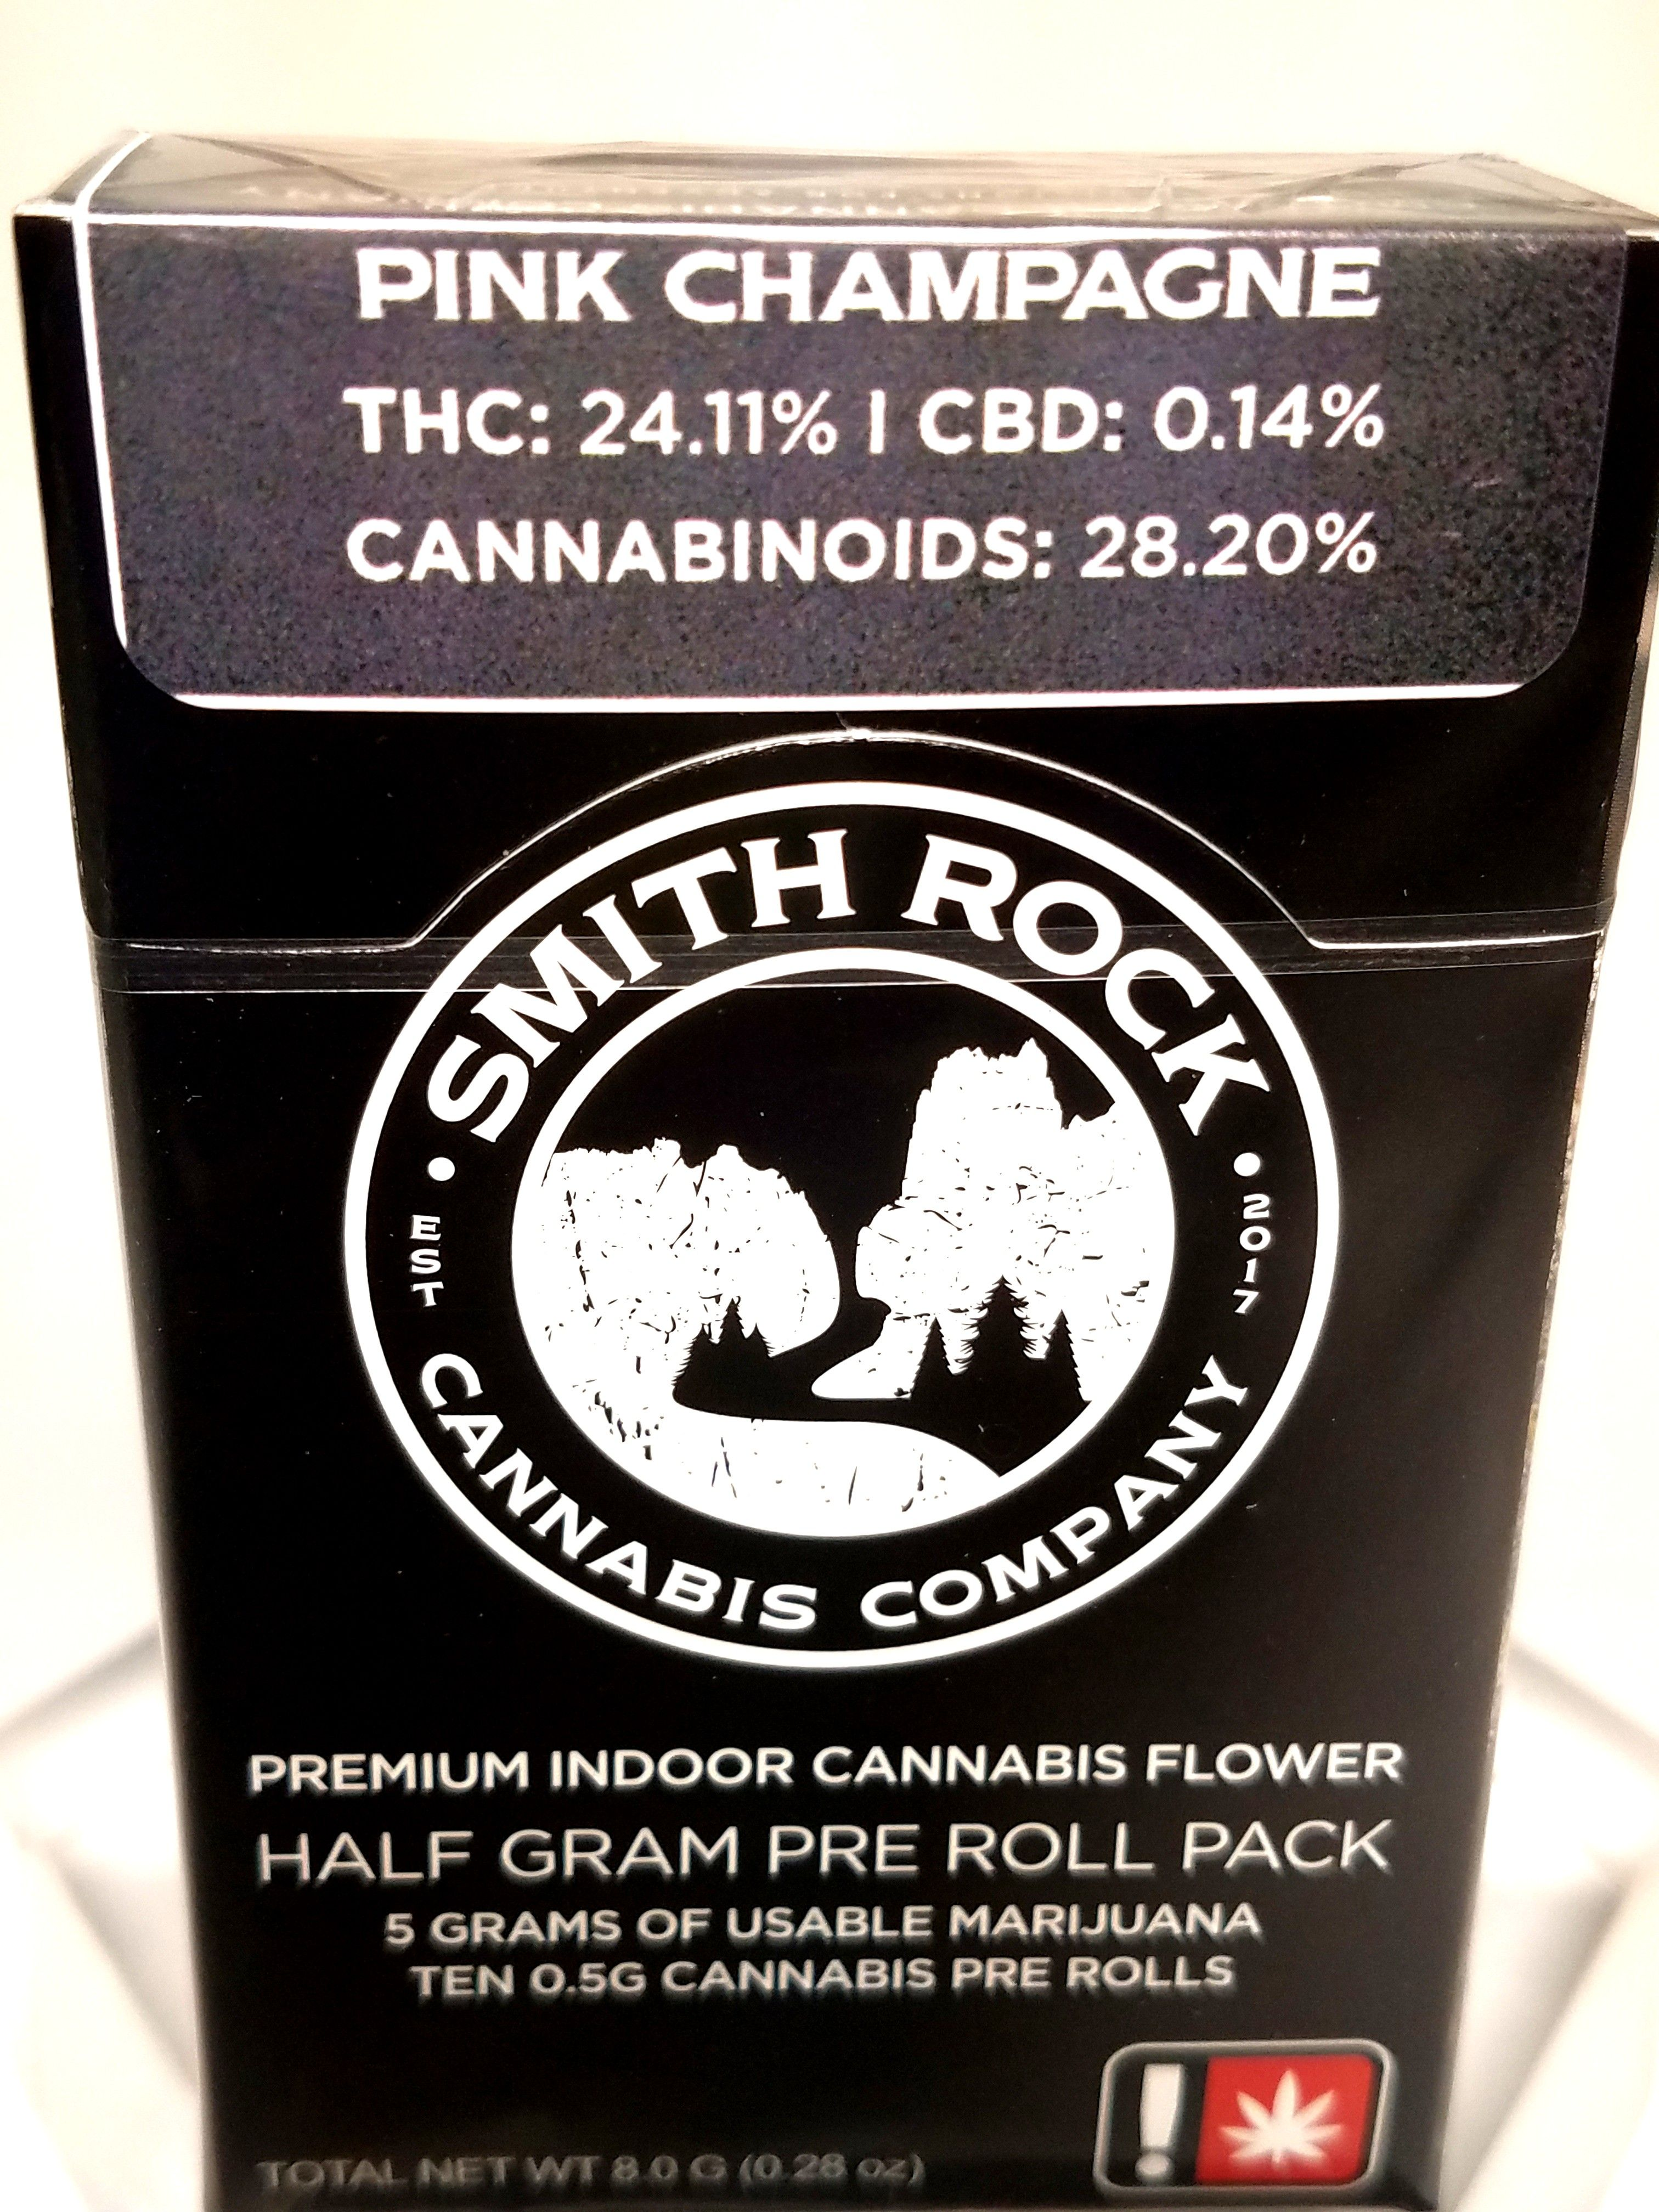 Smith Rock Cannabis Company - Pink Champagne, Indica, 10 Pack